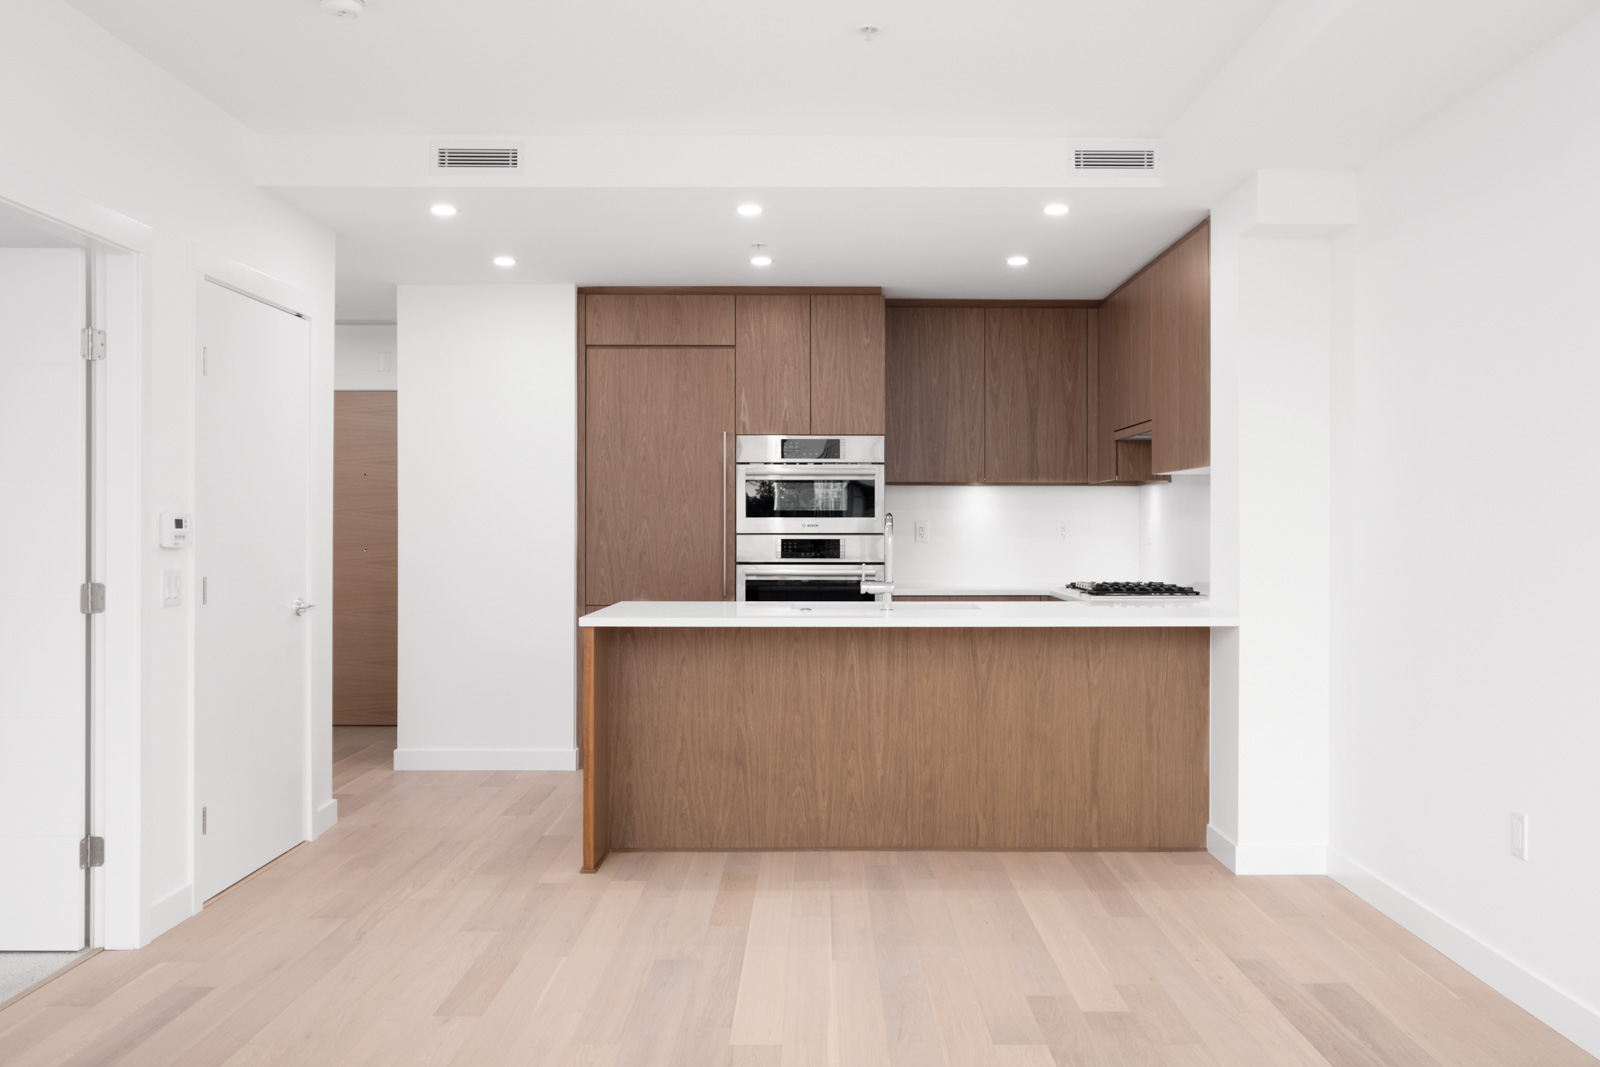 kitchen in rental condo at Hawthorne in the Cambie Corridor neighbourhood of Vancouver